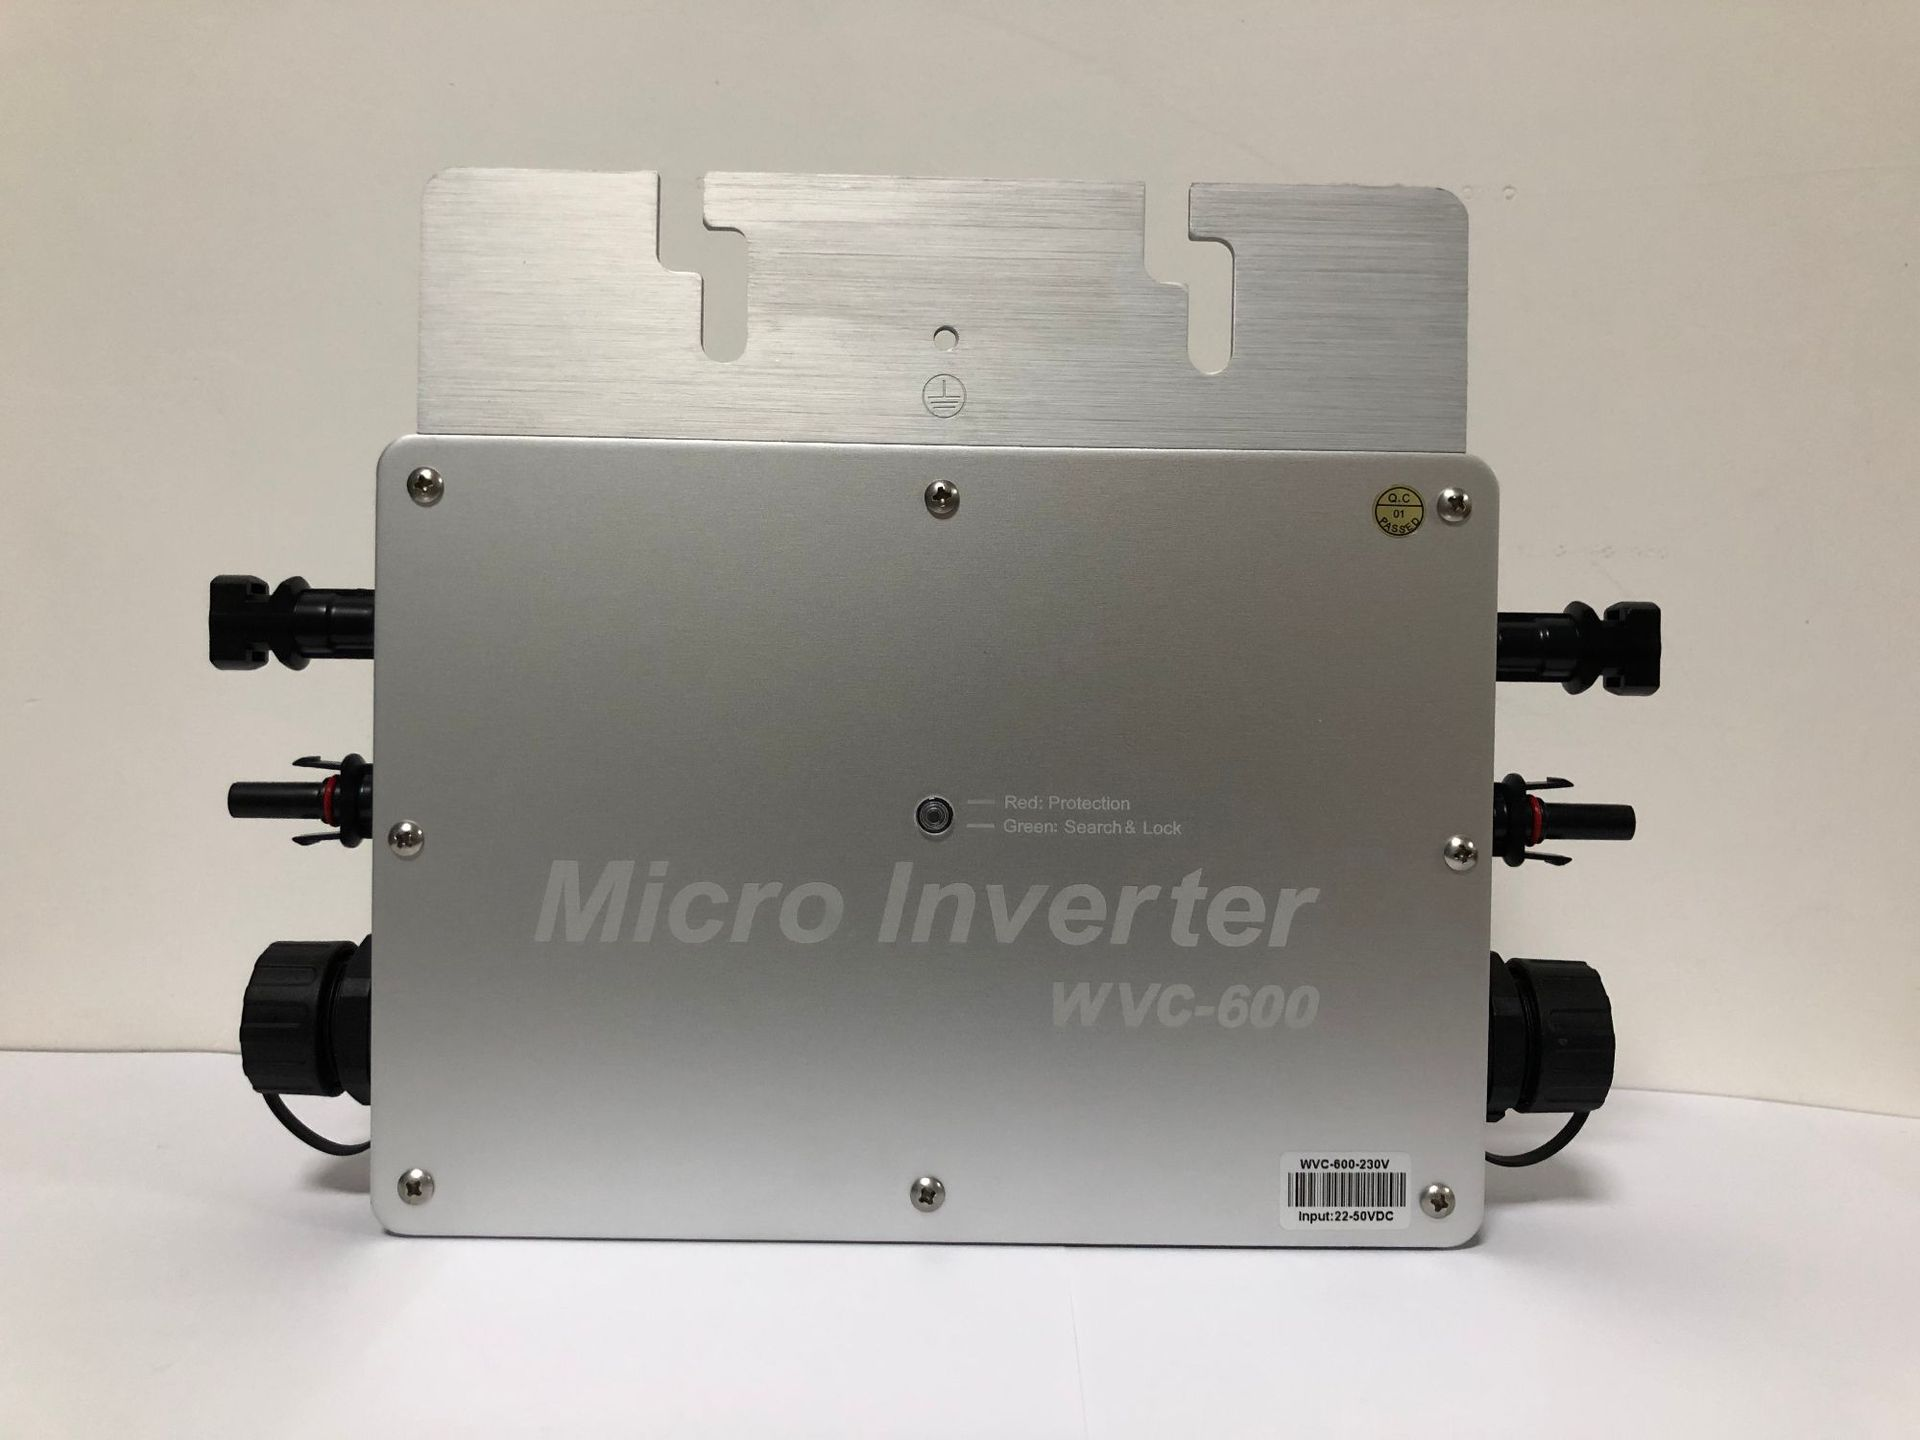 H61e32aeee8154134a6b48ca504034363o - Solar Inverter Photovoltaic Inverter Grid-Connected Inverter IP65 Water-Proof WVC-600W 110vac 230vac